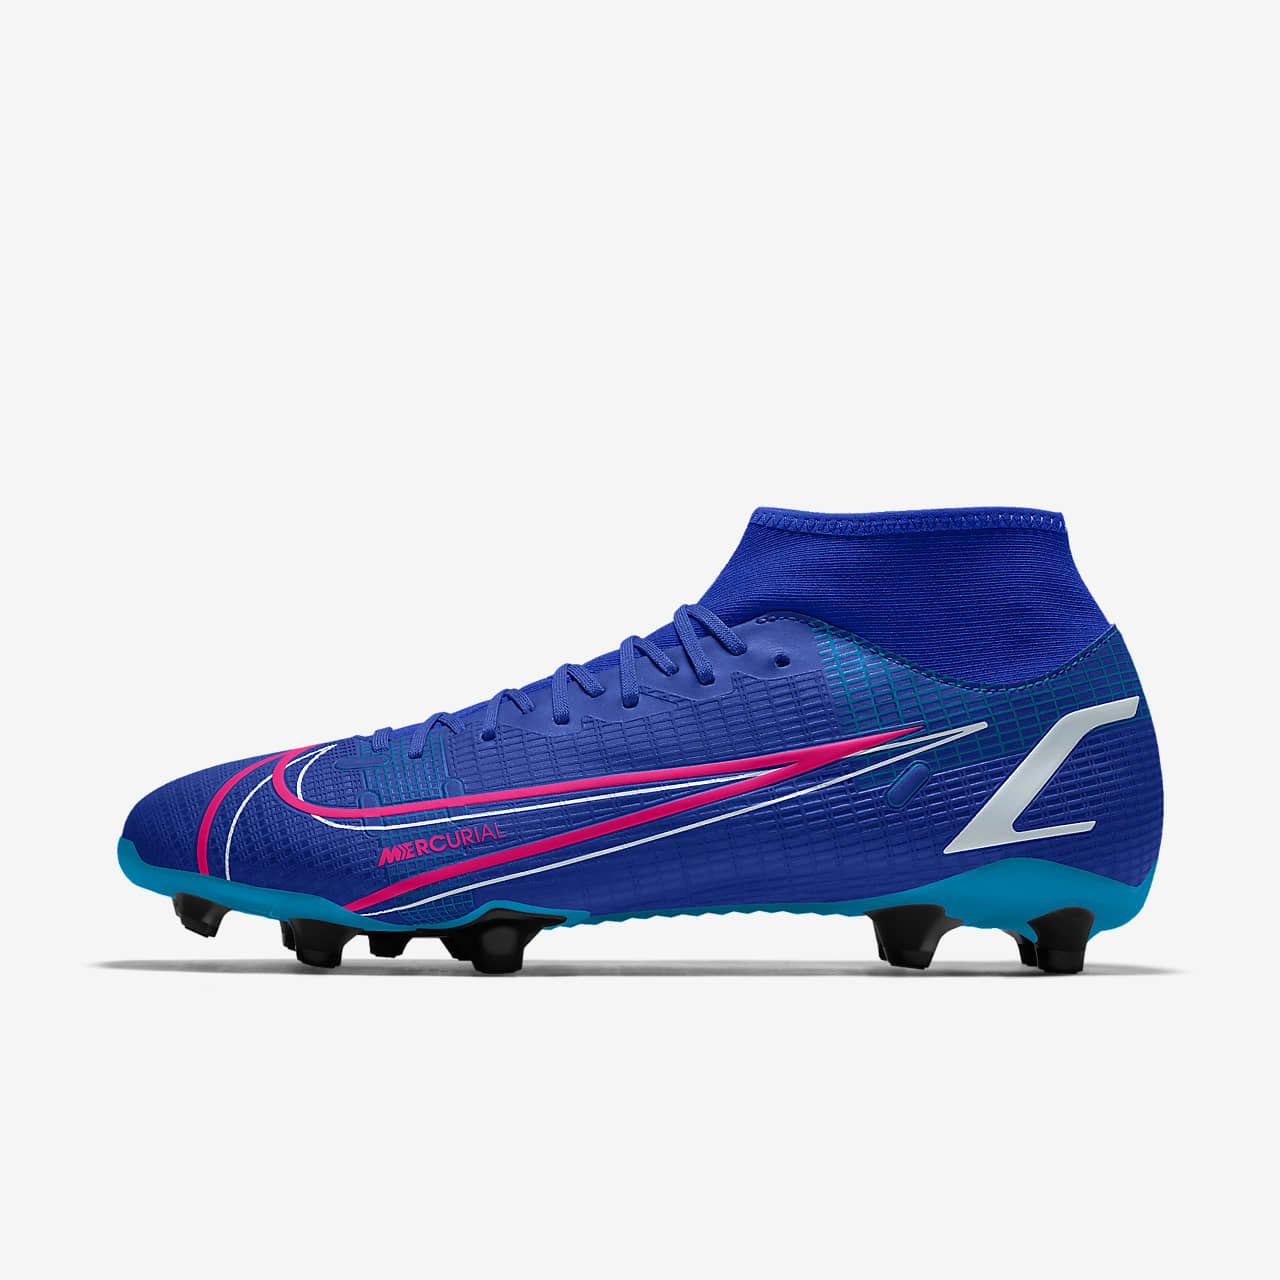 Nike Mercurial Superfly 8 Academy By You 專屬訂製足球釘鞋